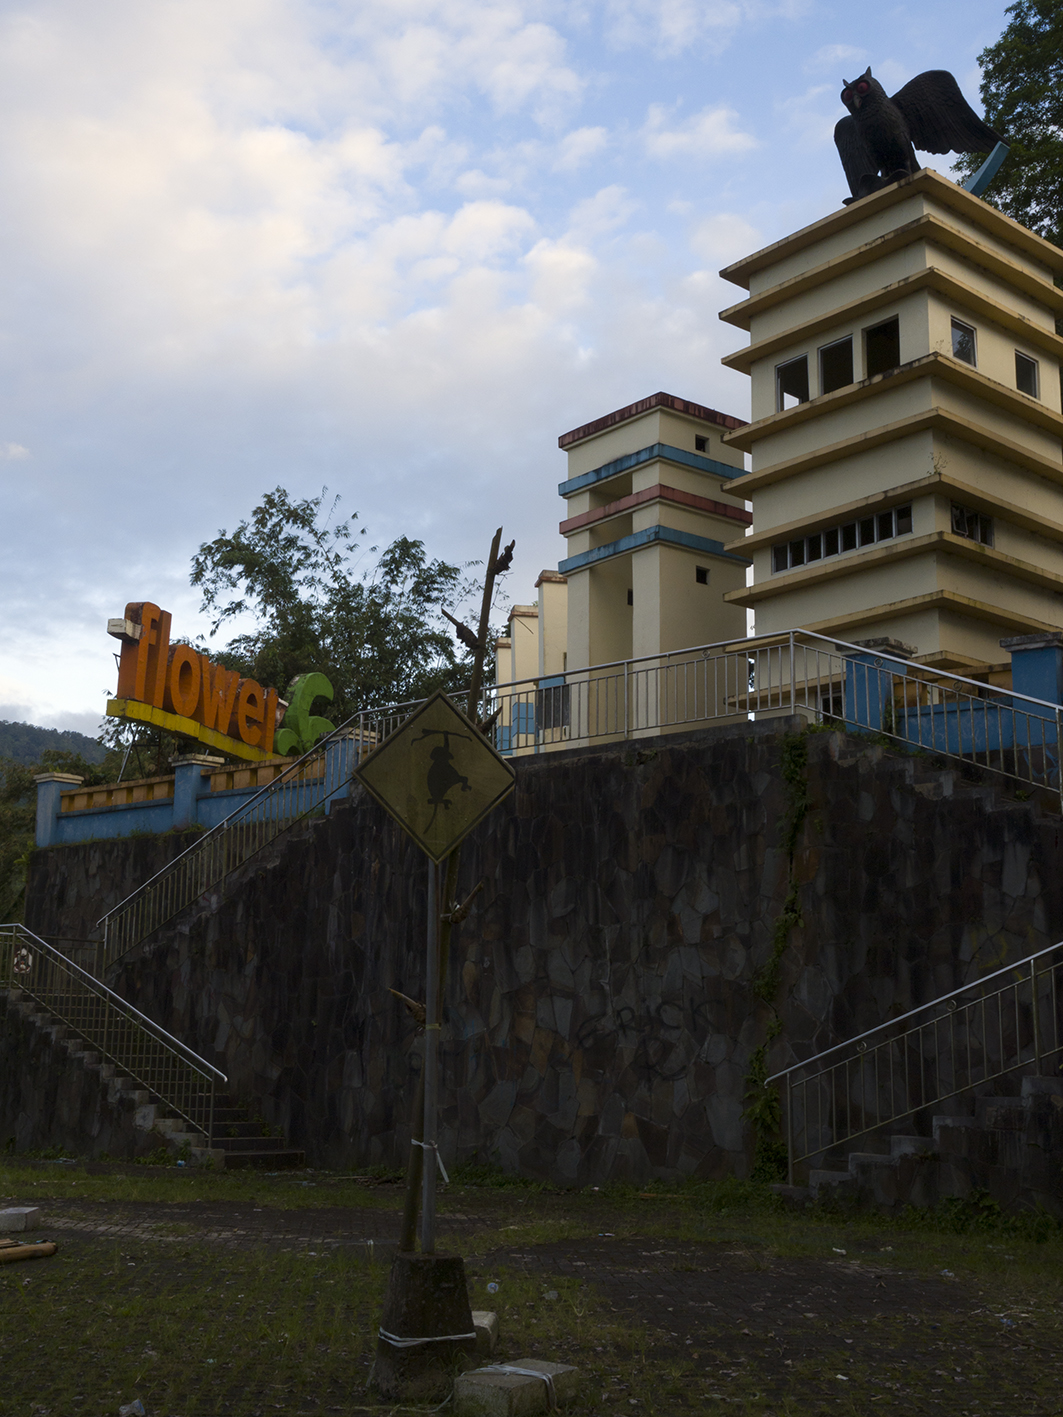 Signs and towers with owl at resting and view point: Tomohon (Sulawesi, Indonesia)